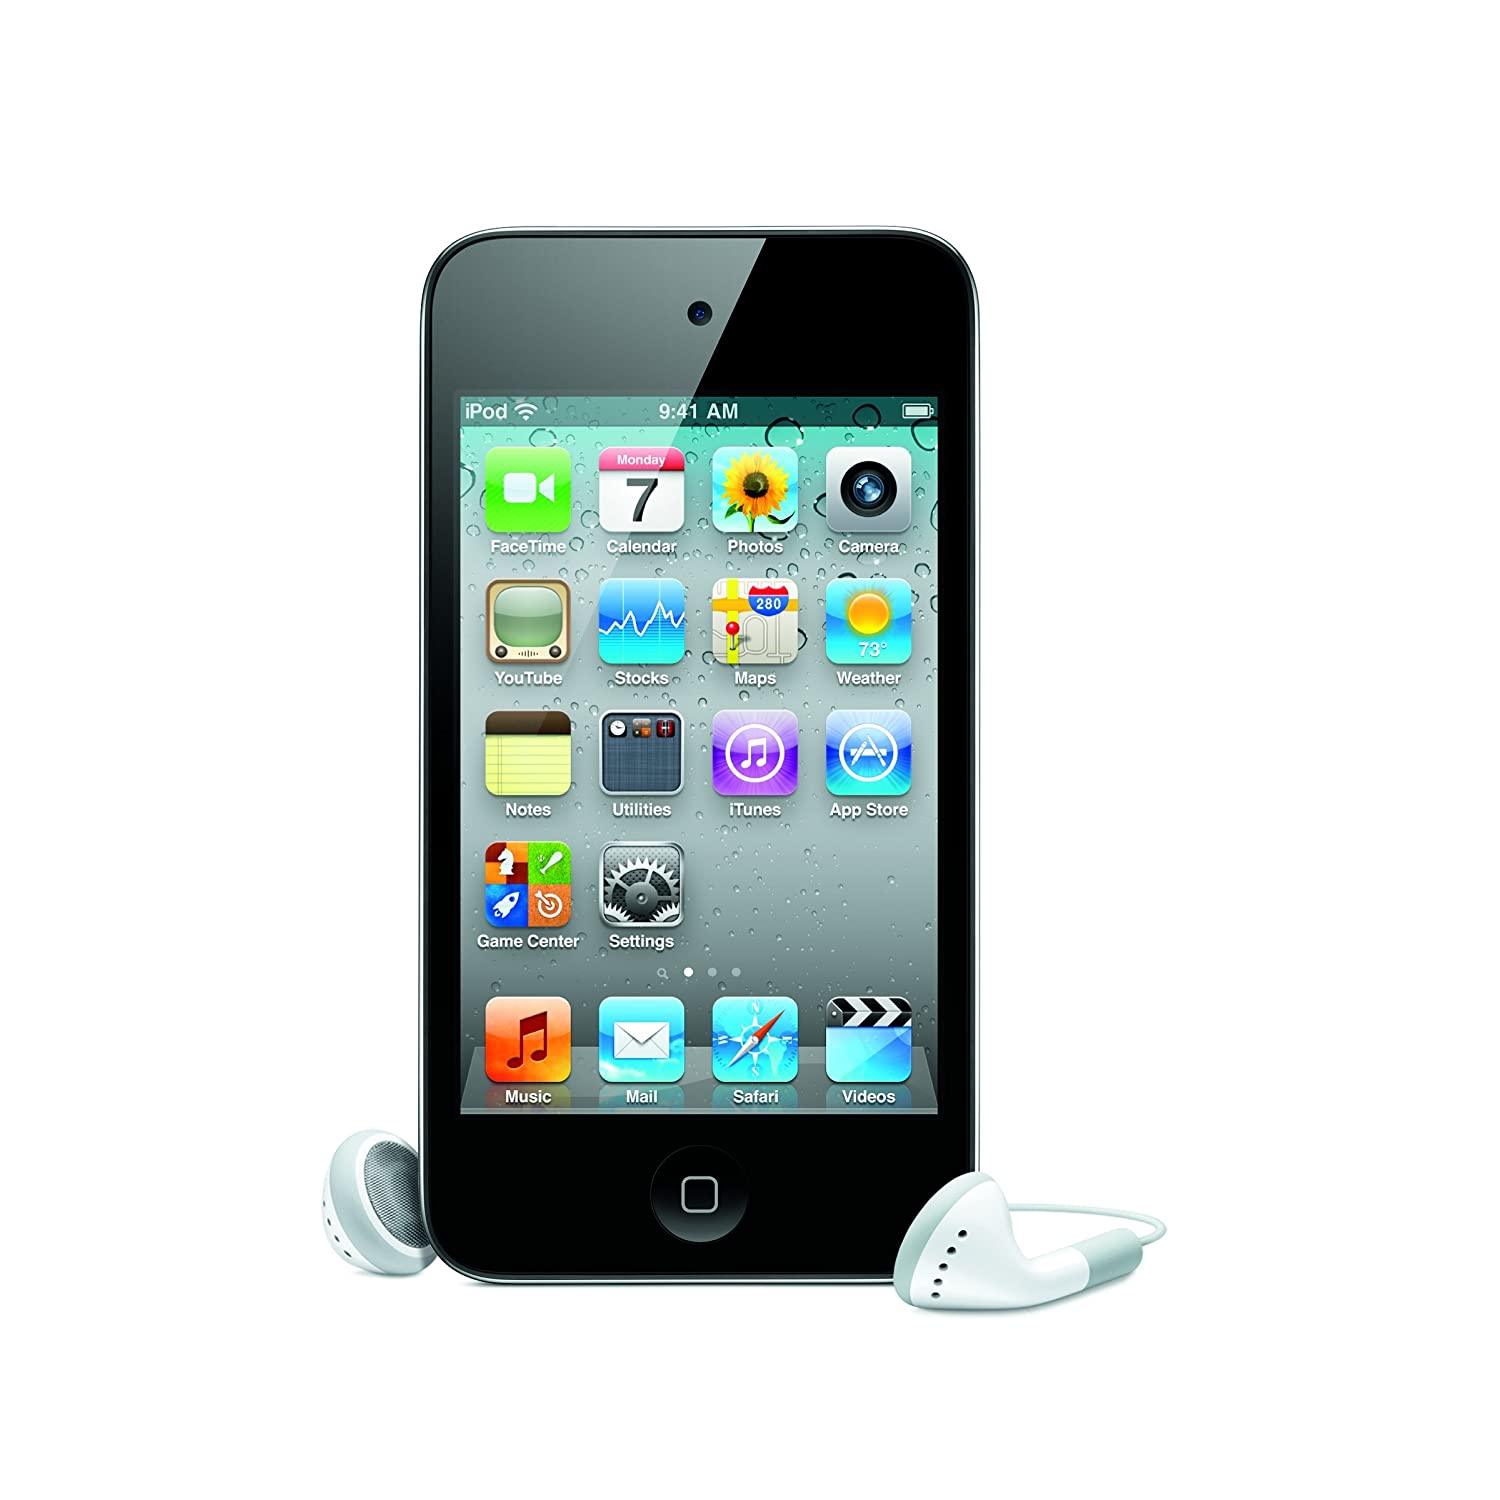 Apple iPod touch 64 GB (4th Generation) NEWEST MODEL